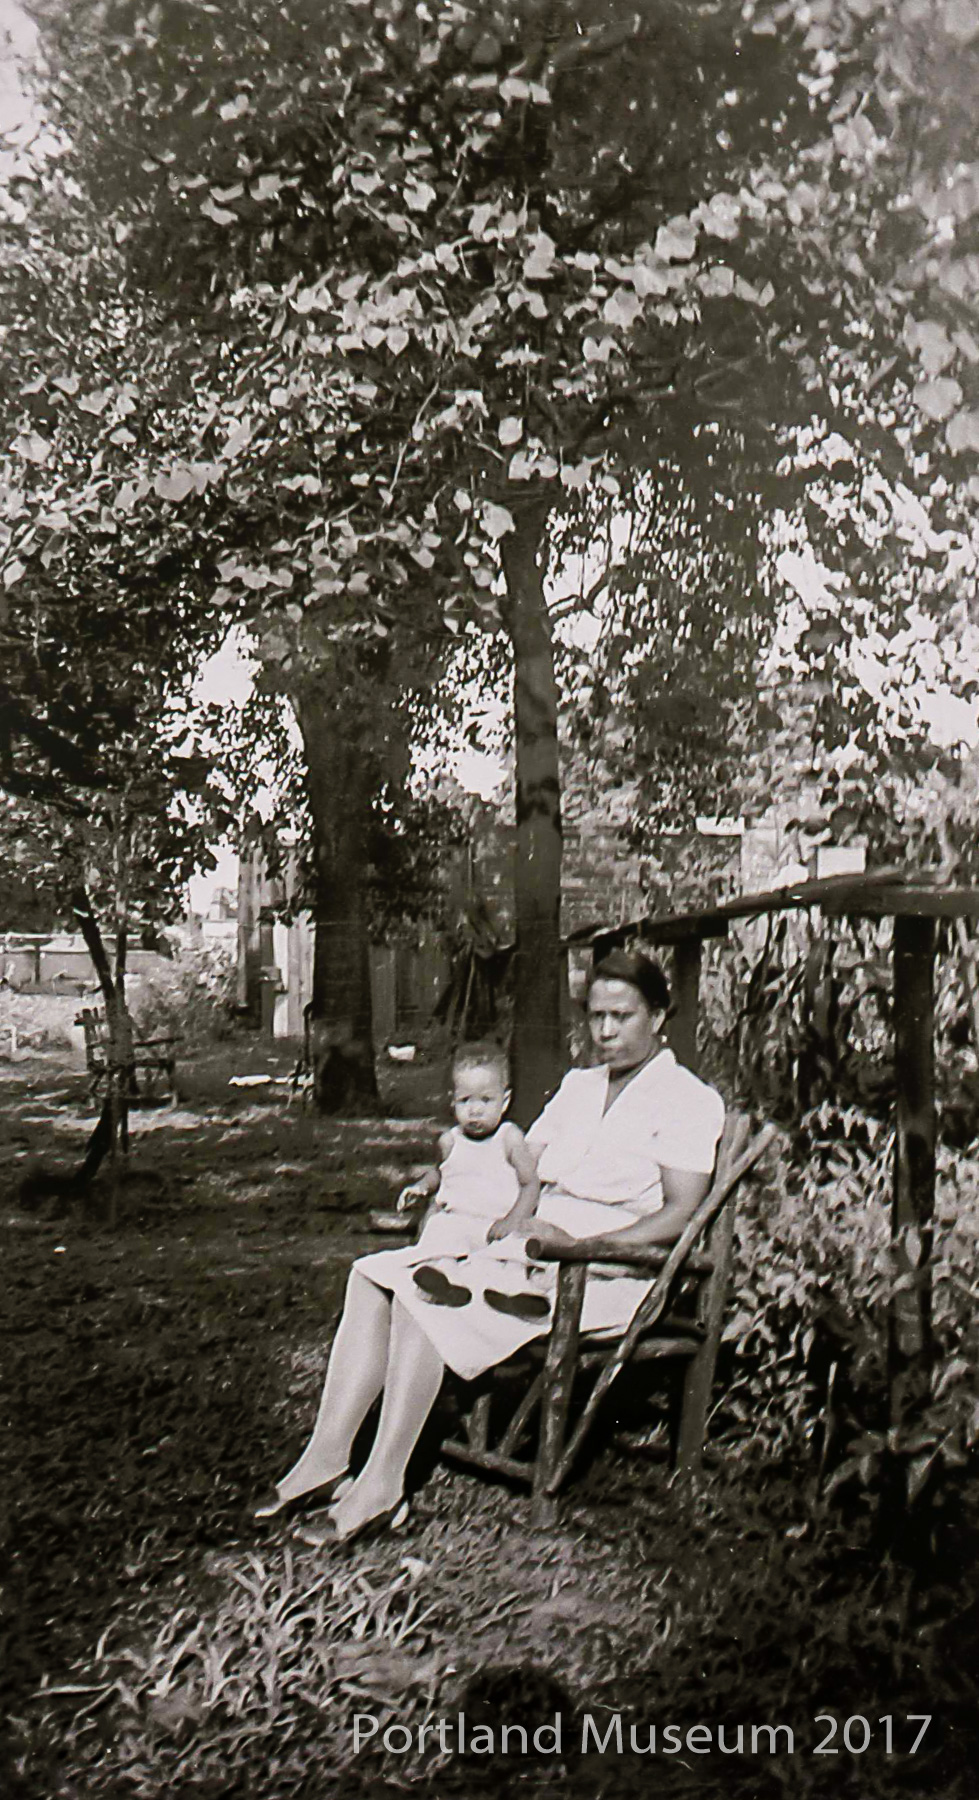 Gladys Harris Depp and Son at 541 N. 37th